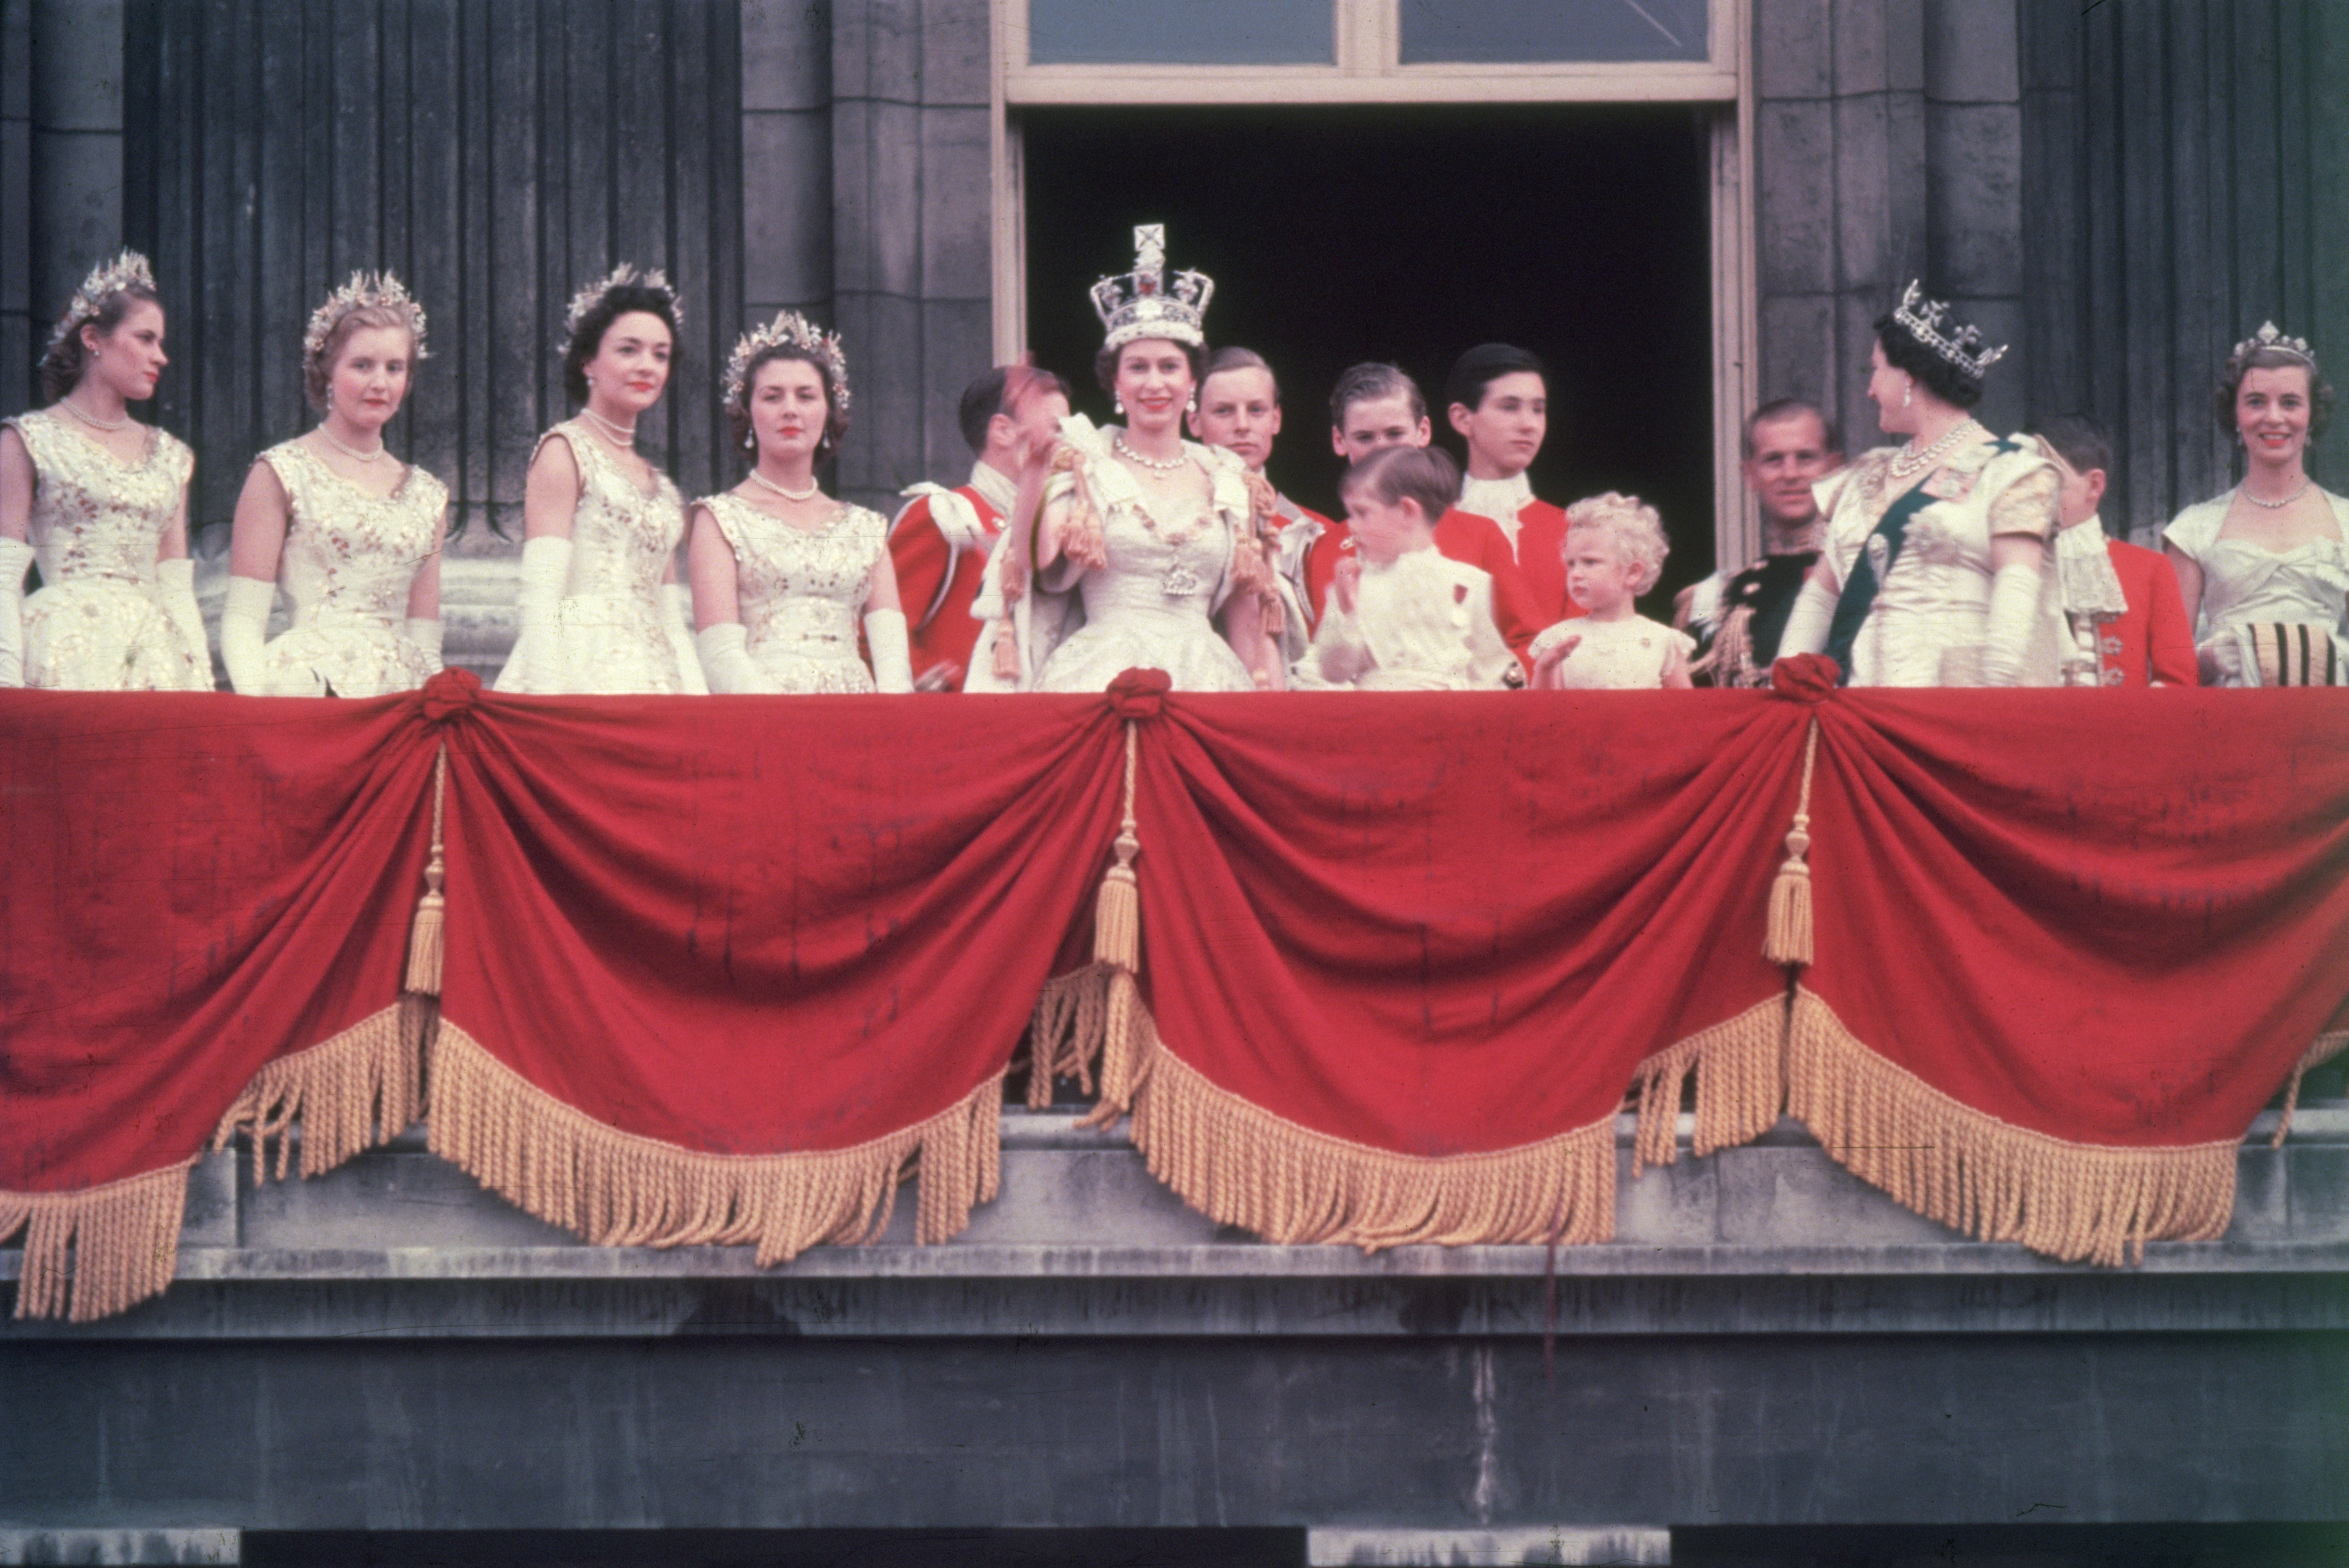 The newly crowned Queen Elizabeth II waves to the crowd from the balcony at Buckingham Palace on June 2, 1953. Her children Prince Charles and Princess Anne stand with her.